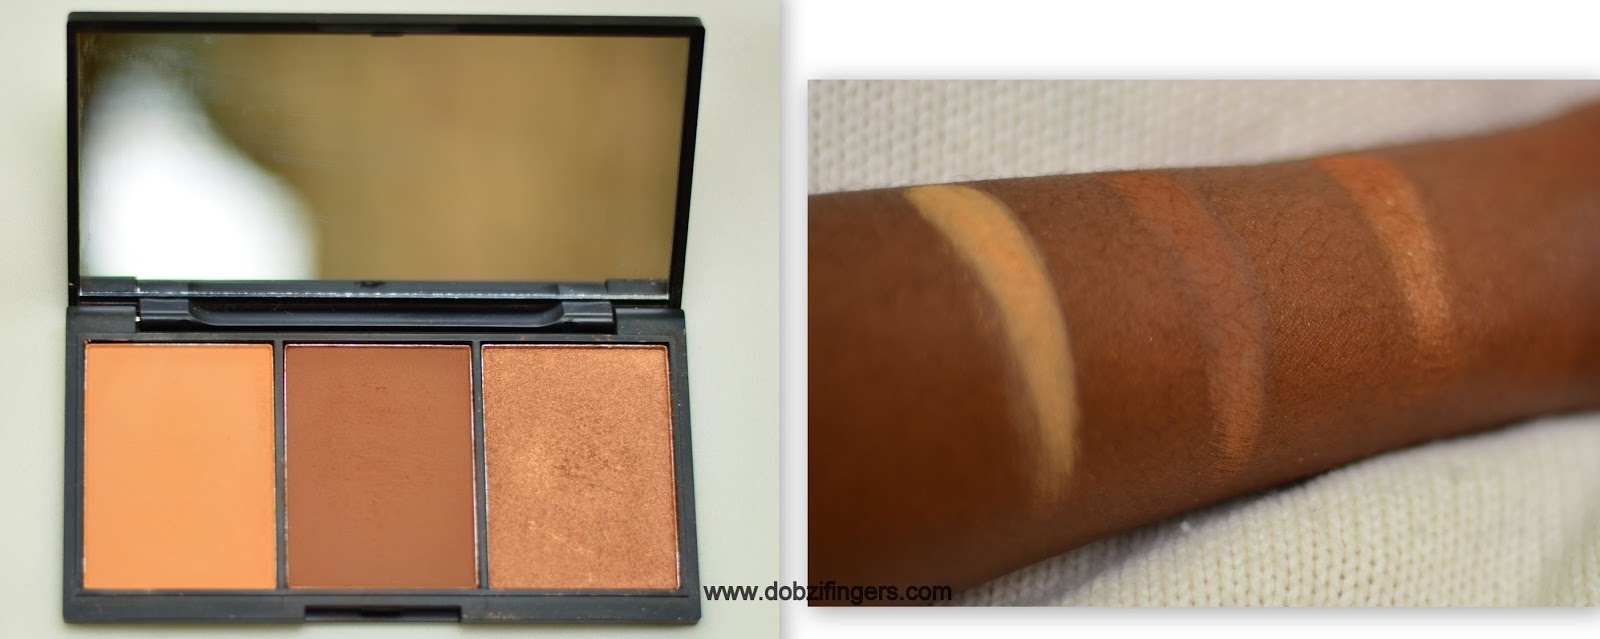 Zaron face definer palette review